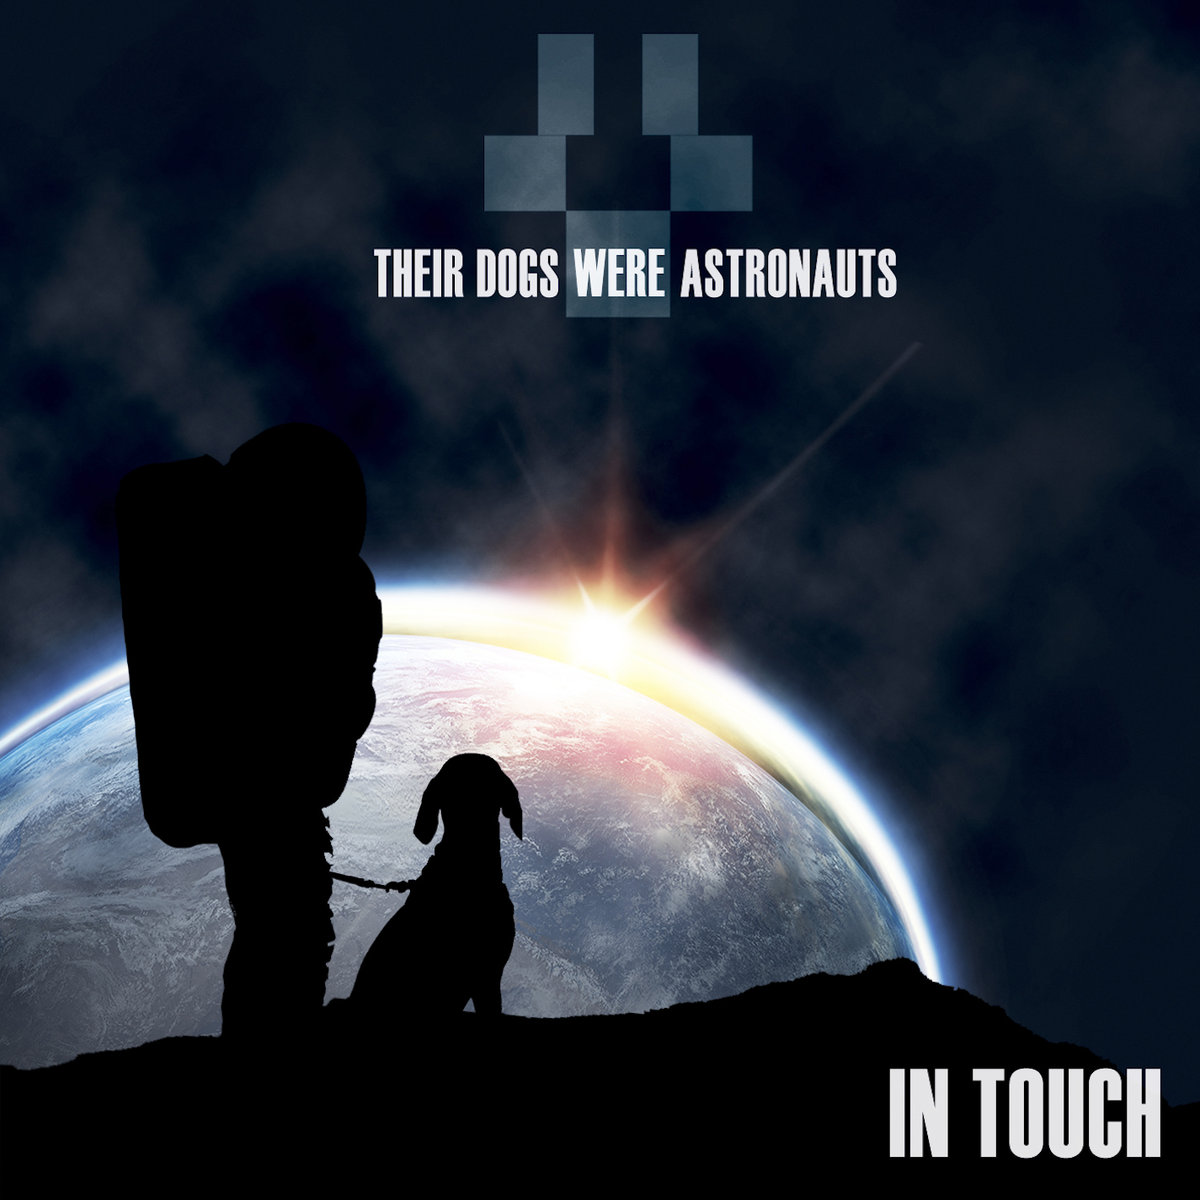 Their Dogs Were Astronauts - Ao Hari @ 'In Touch' album (instrumental metal, metal)